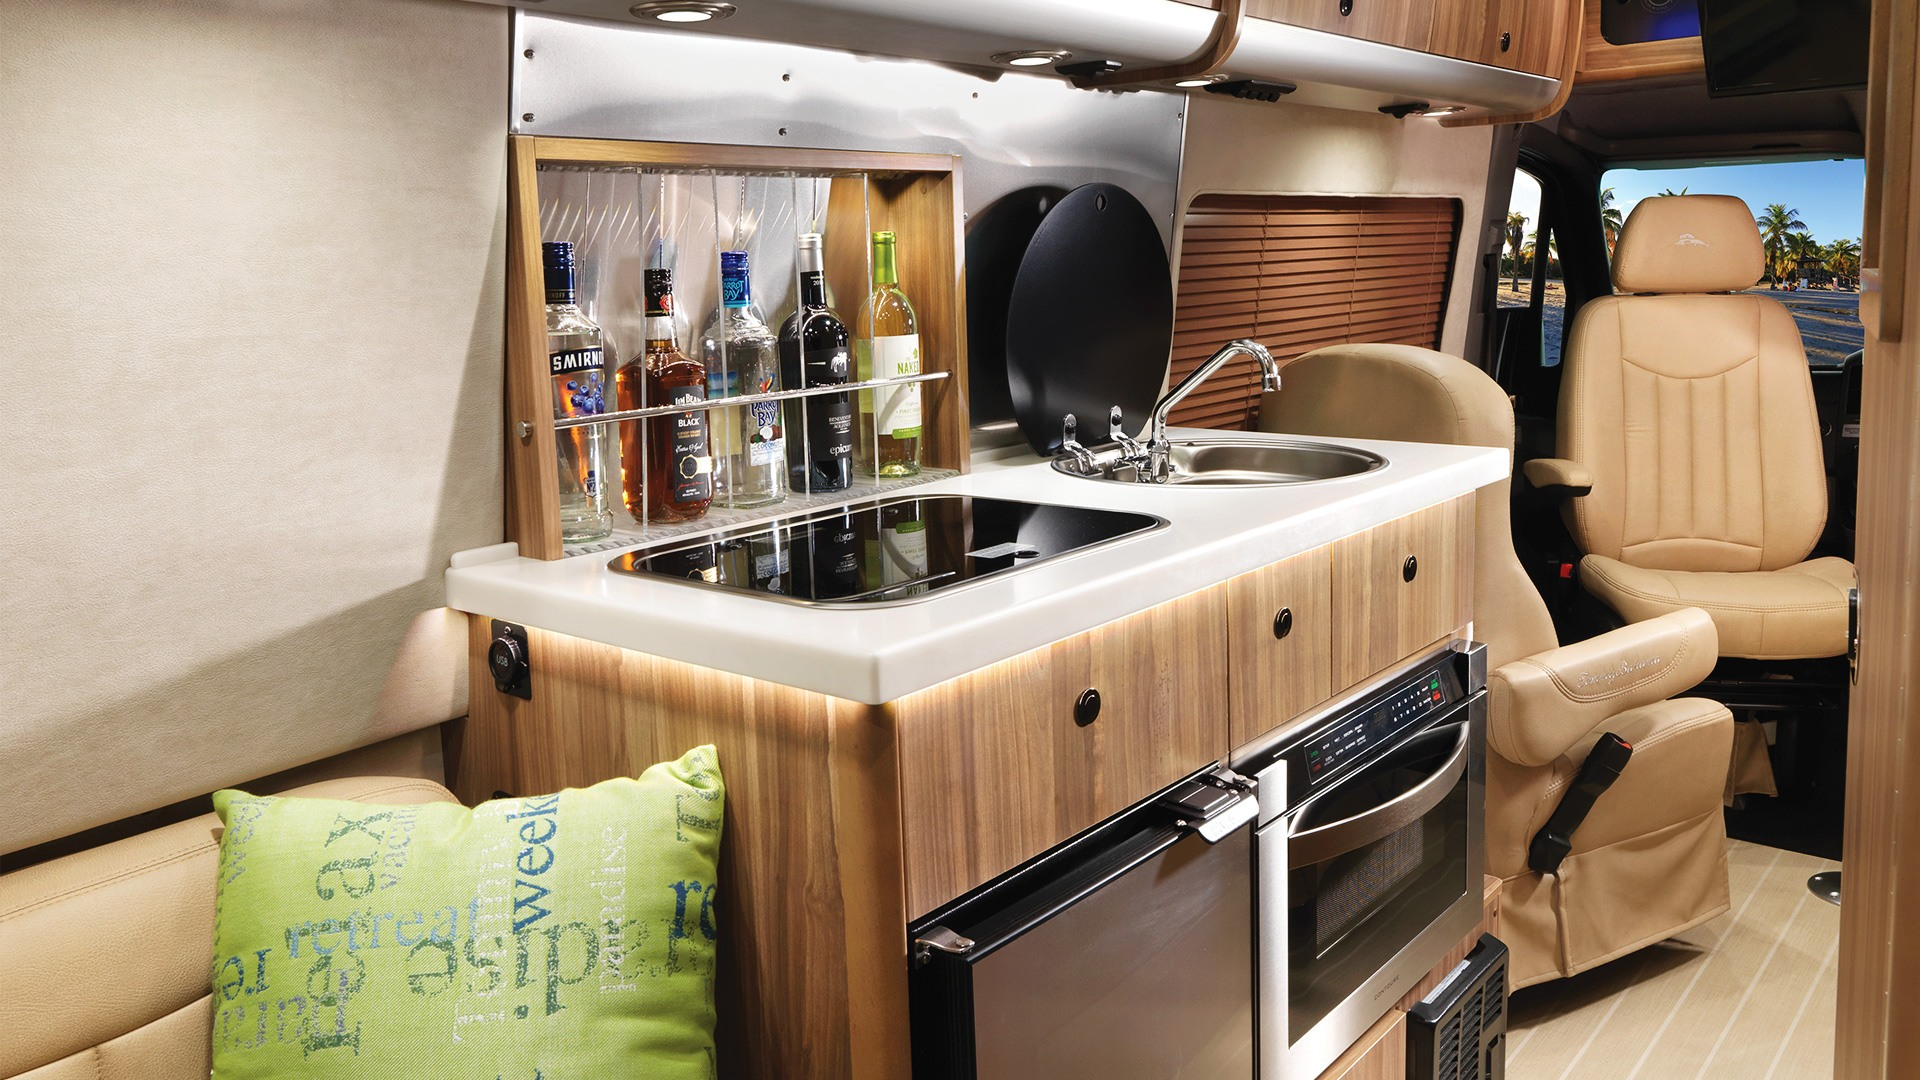 2019 Airstream Tommy Bahama® Interstate